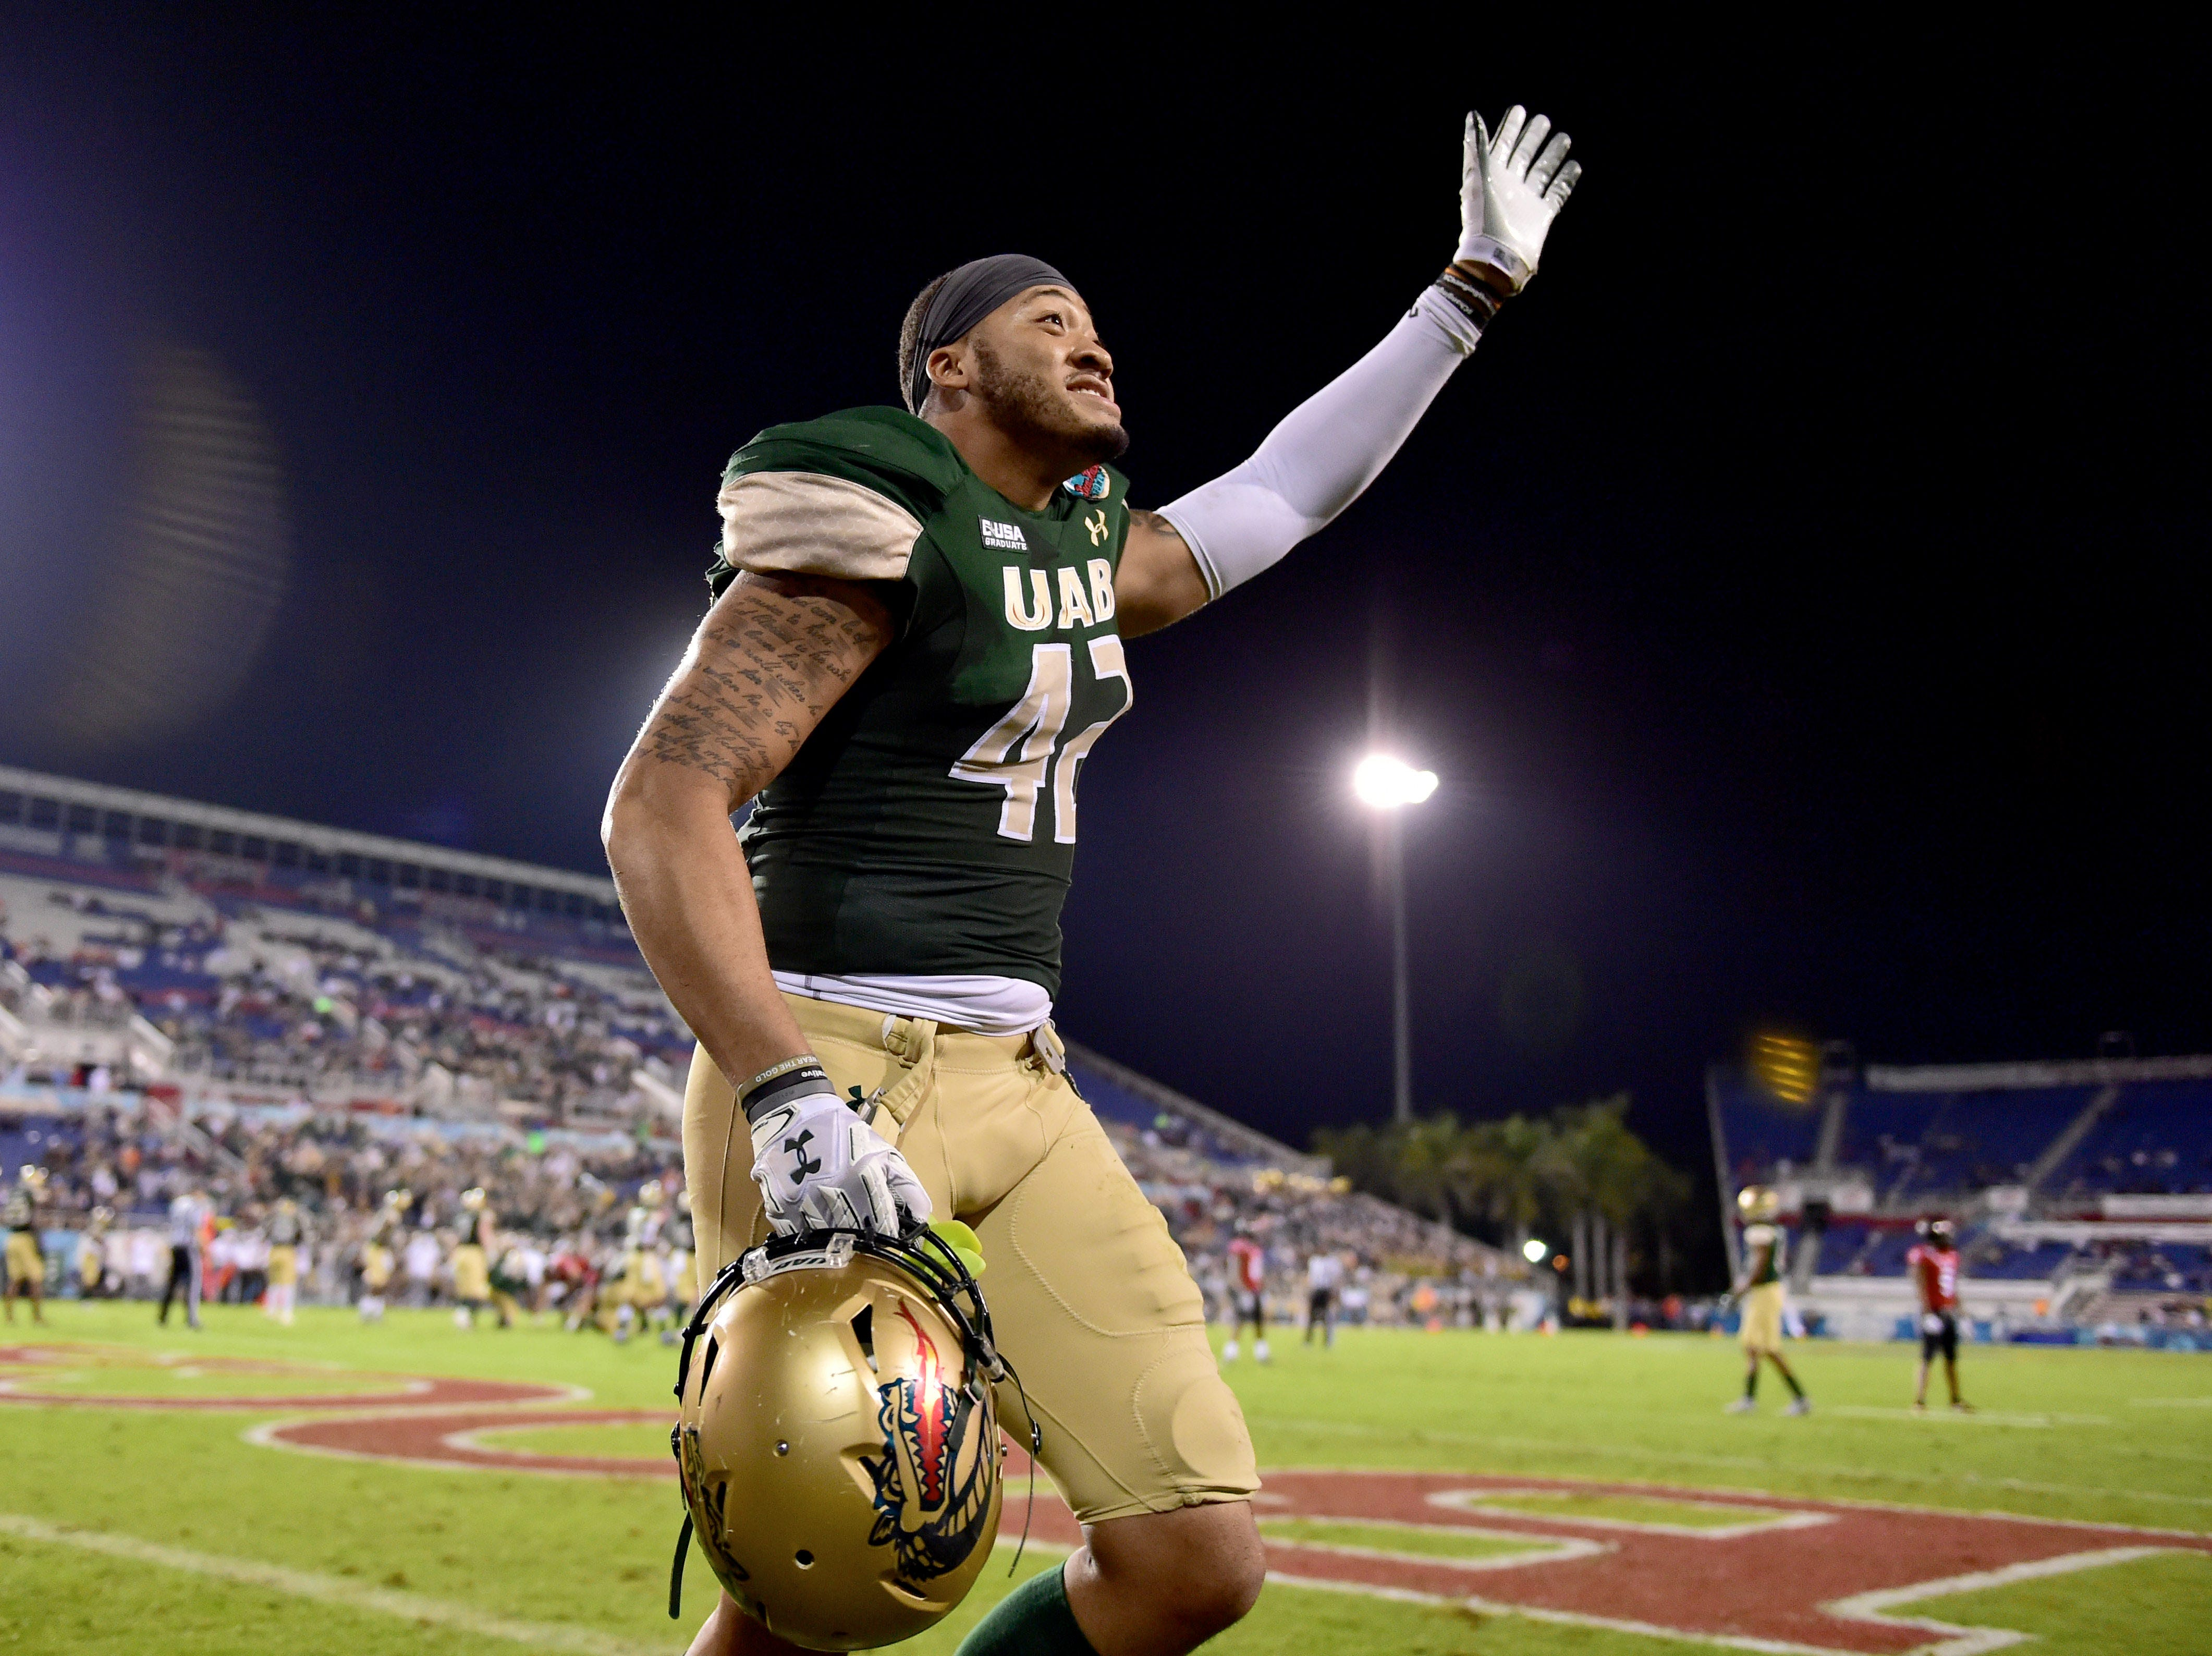 UAB Blazers linebacker Kylen Binn (42) waves after being disqualified during the second half against the Northern Illinois Huskies in the Boca Raton Bowl.